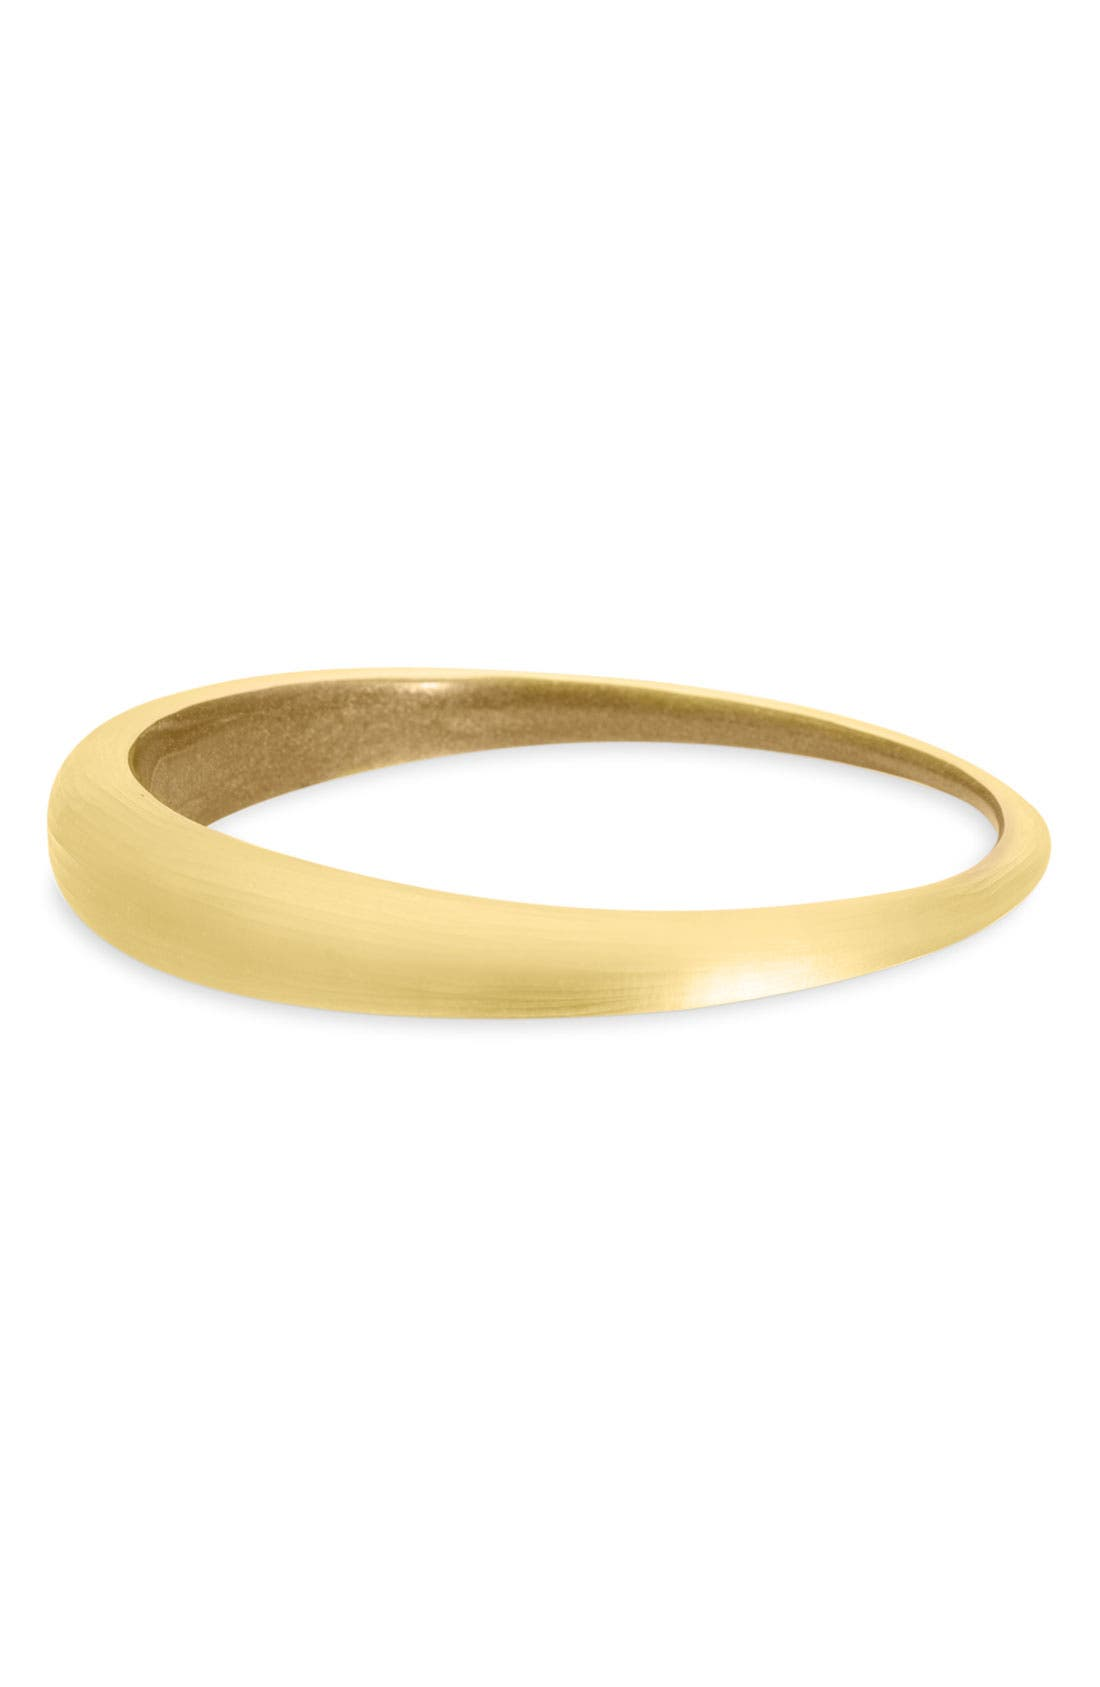 Alternate Image 1 Selected - Alexis Bittar 'Lucite®' Skinny Tapered Bangle